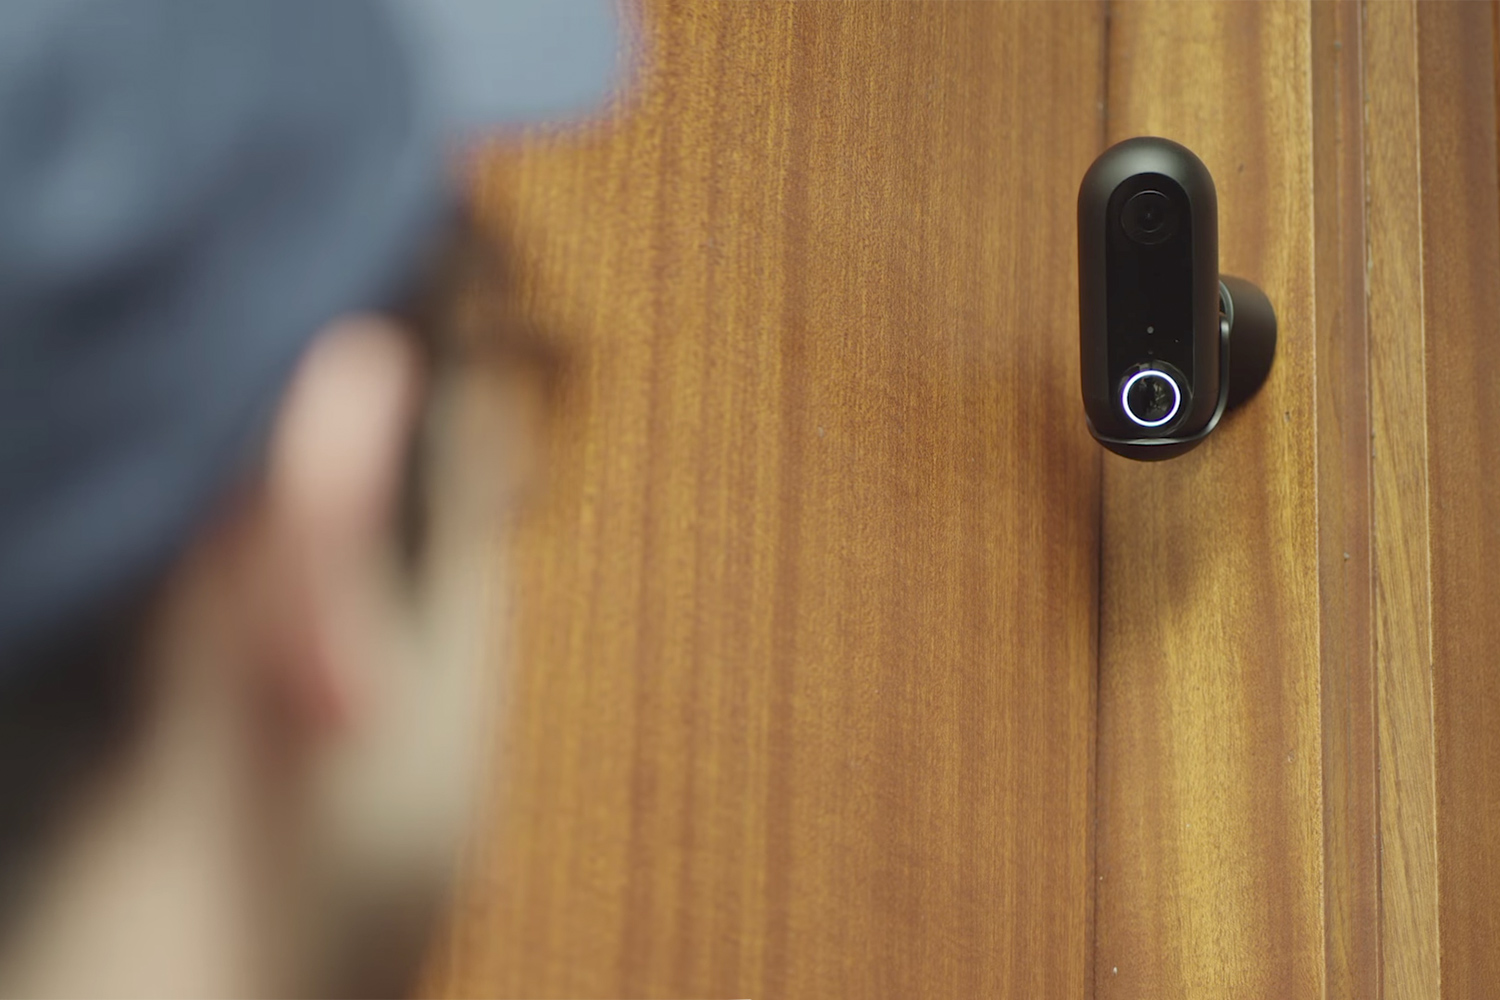 The Best Home Security Camera You Can Buy And 3